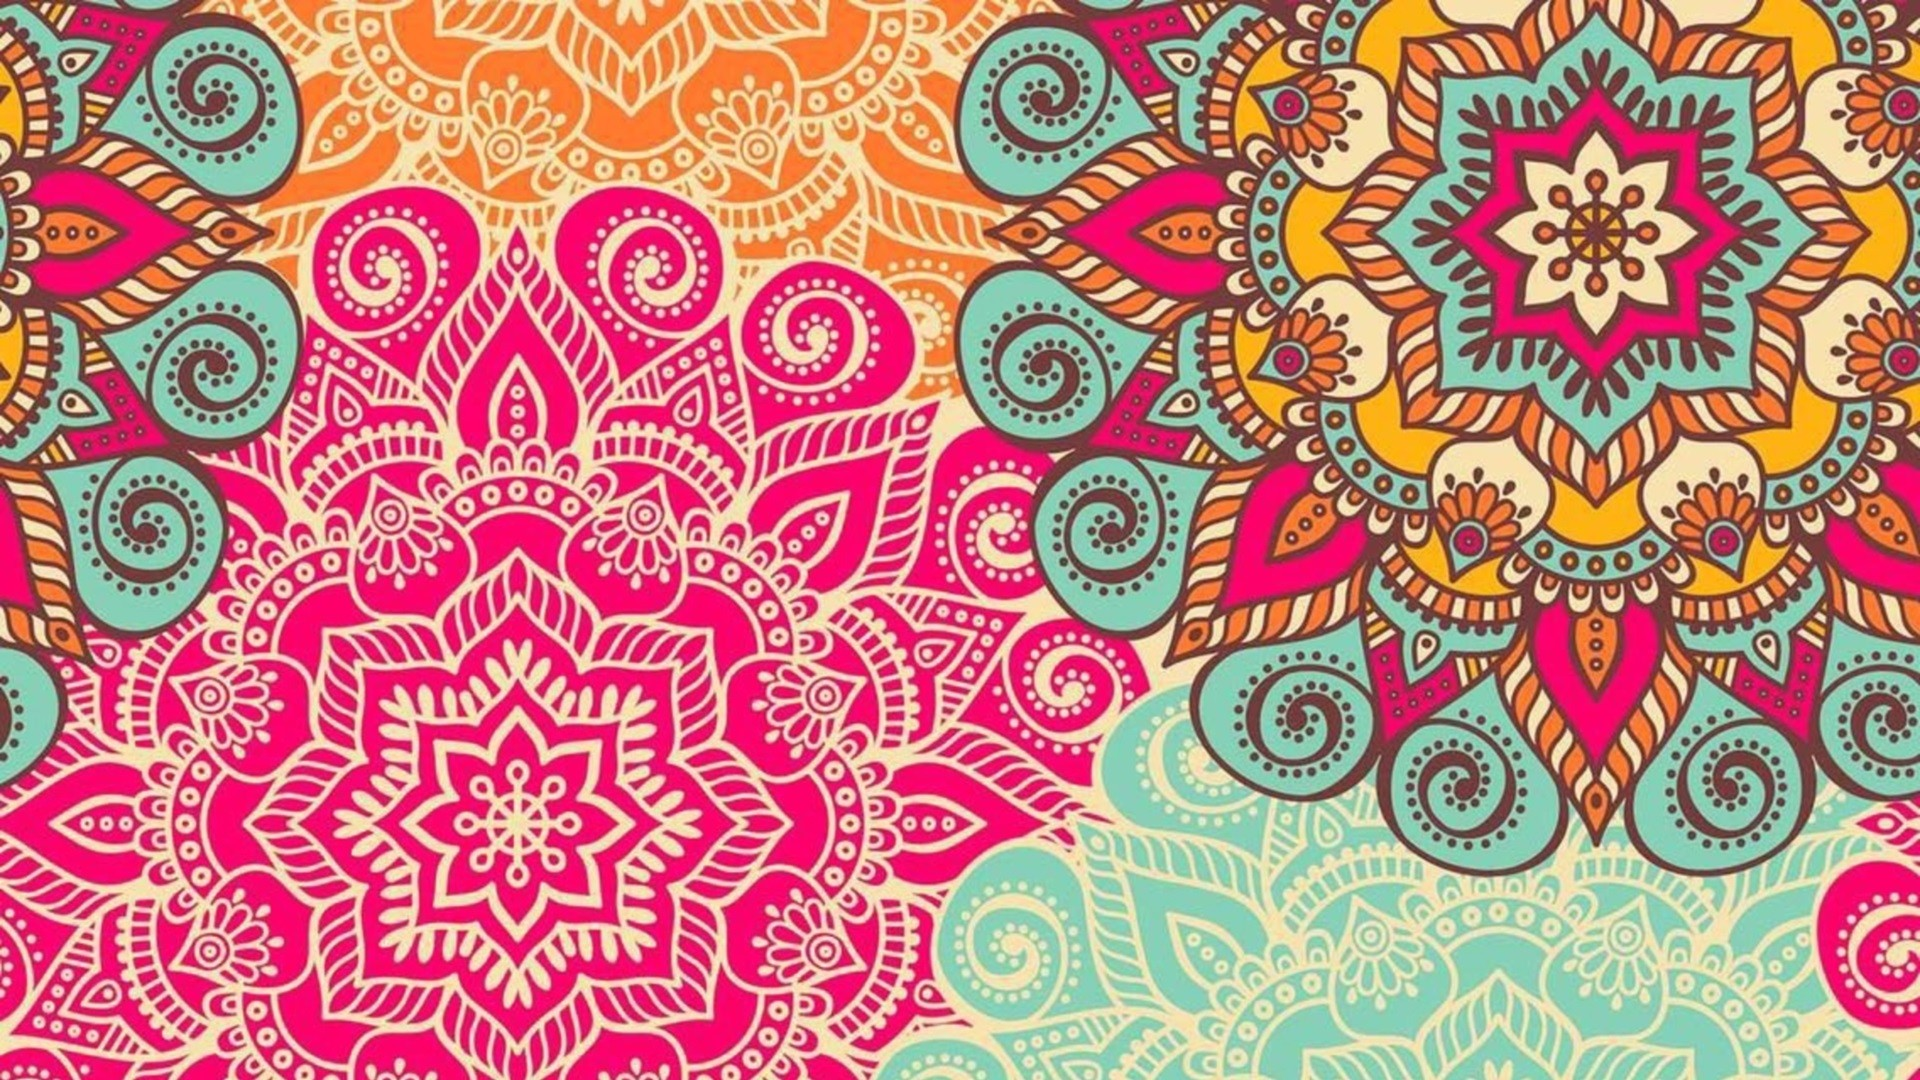 Res: 1920x1080, Buddhist-Mandala-1920×1080-wallpaper-wp10096